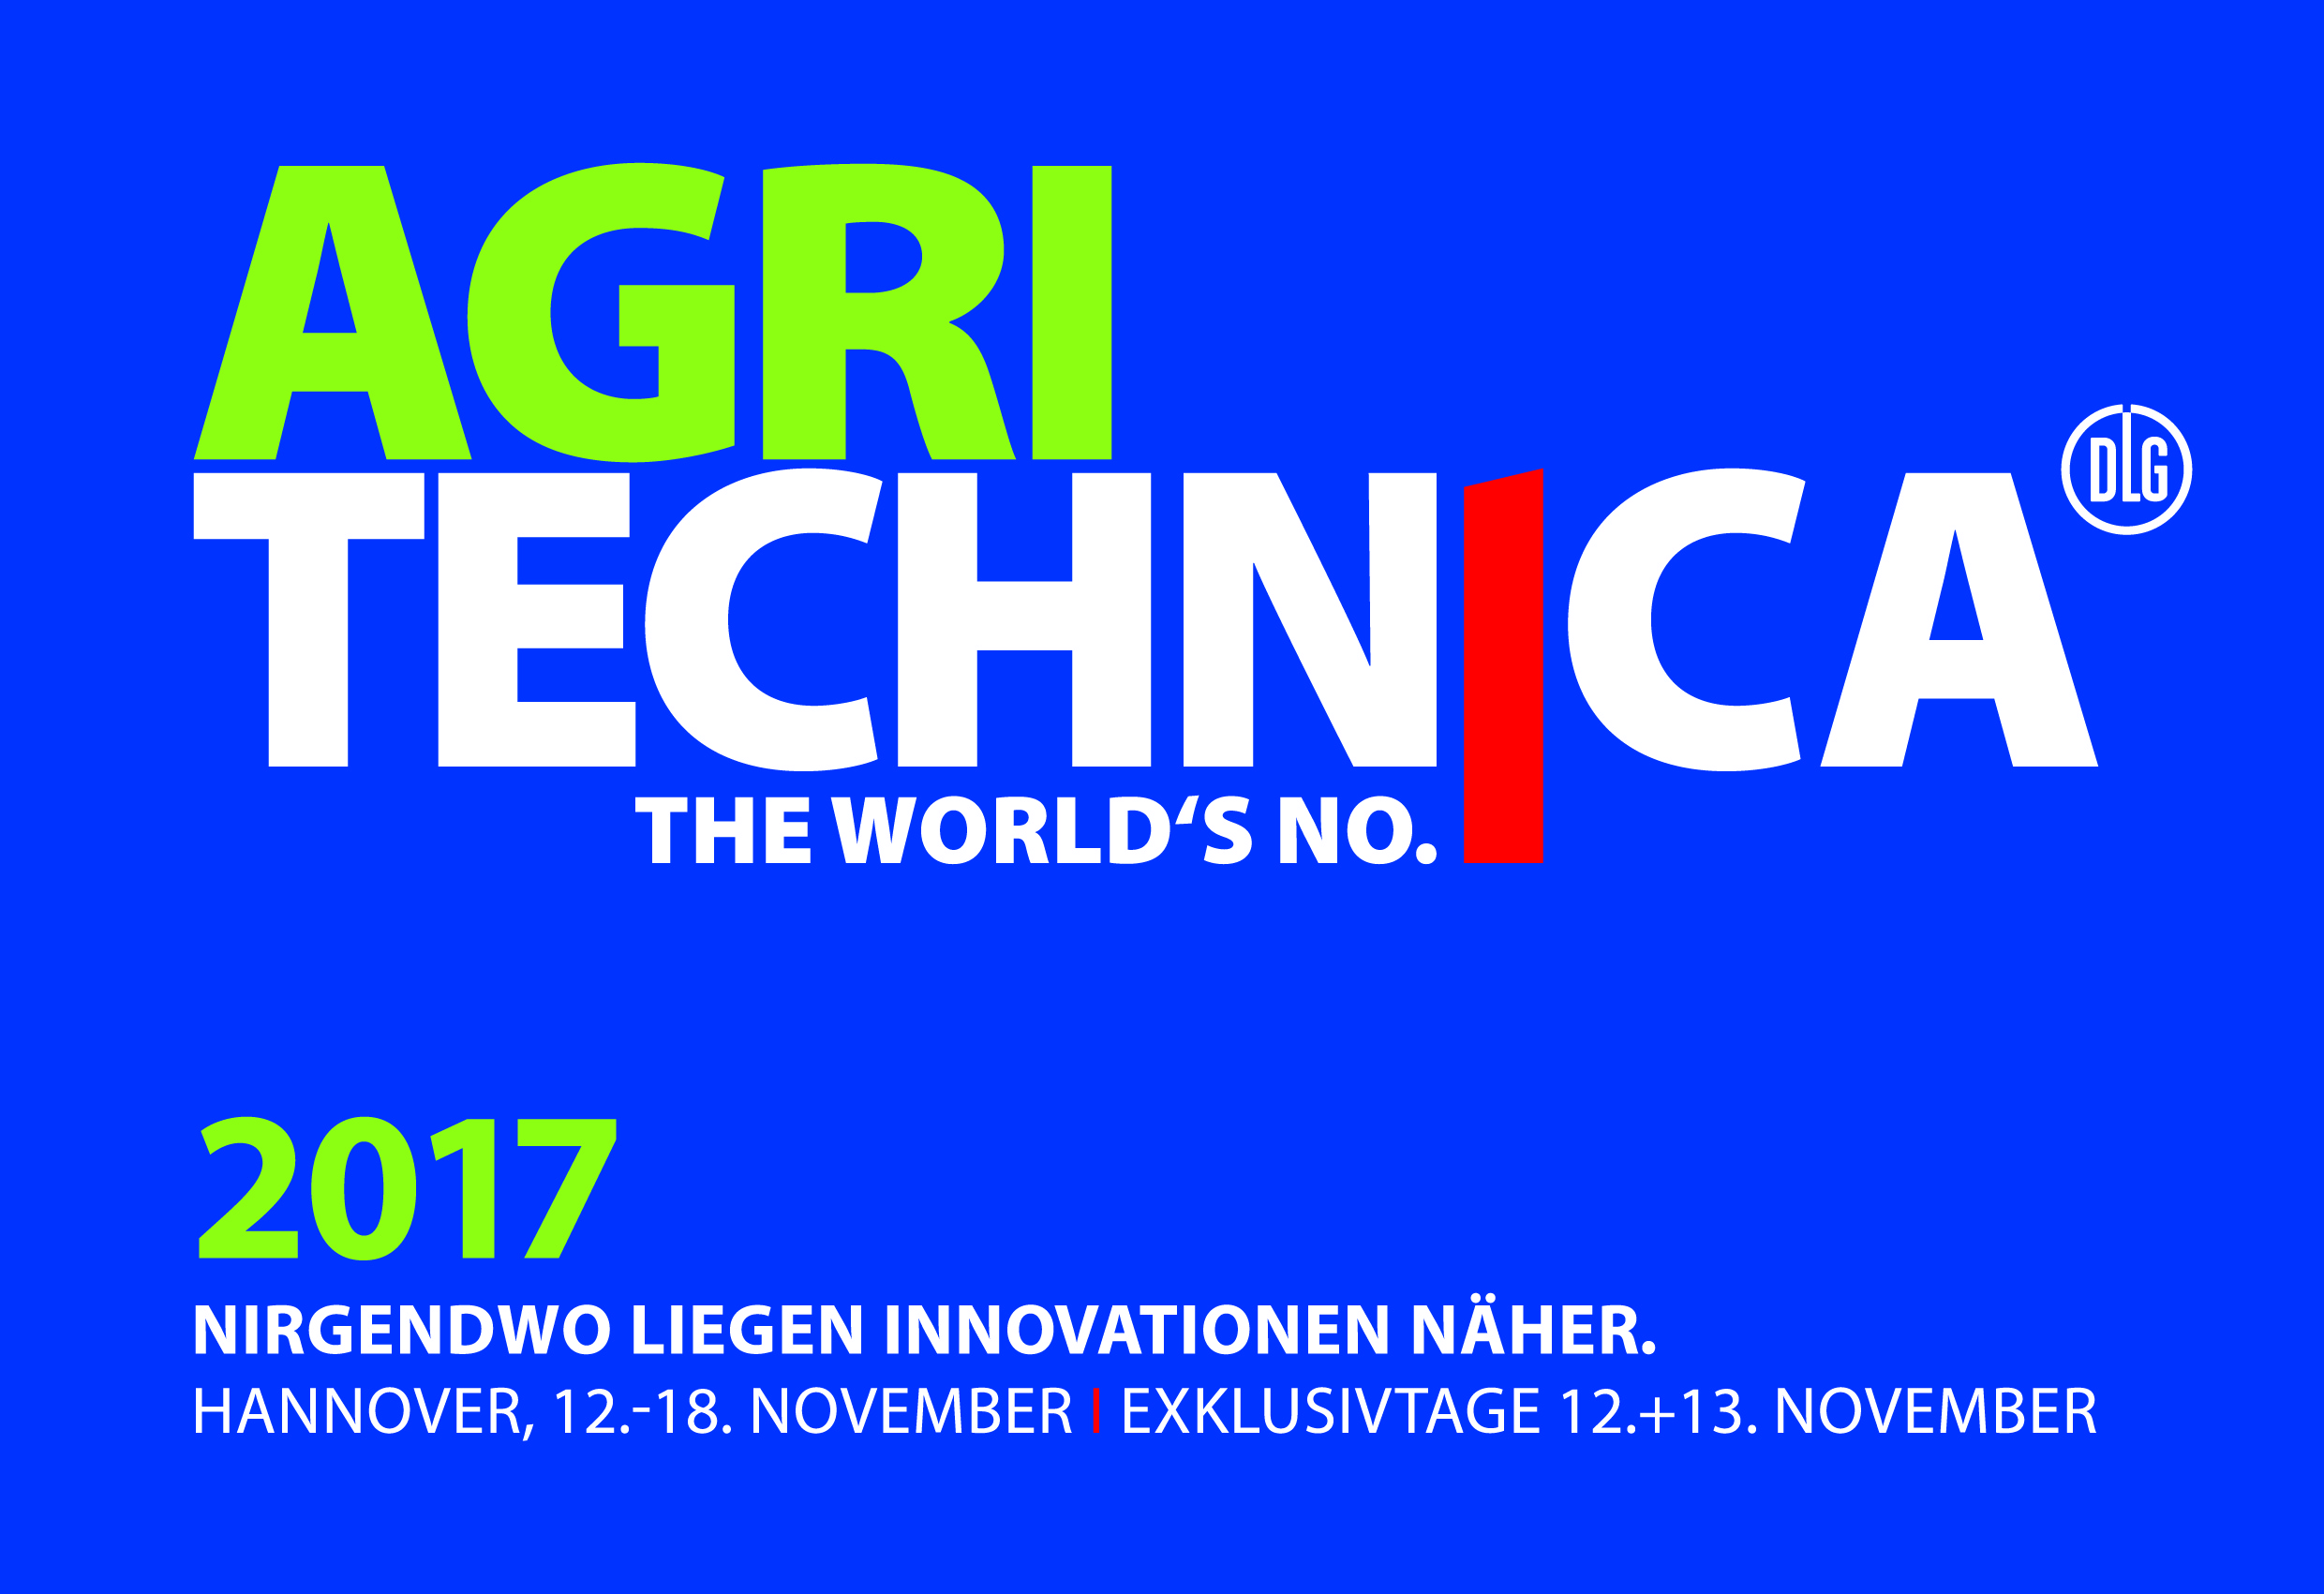 Bellota en Agritechnica (12-18 Nov.) Hall 11 A11